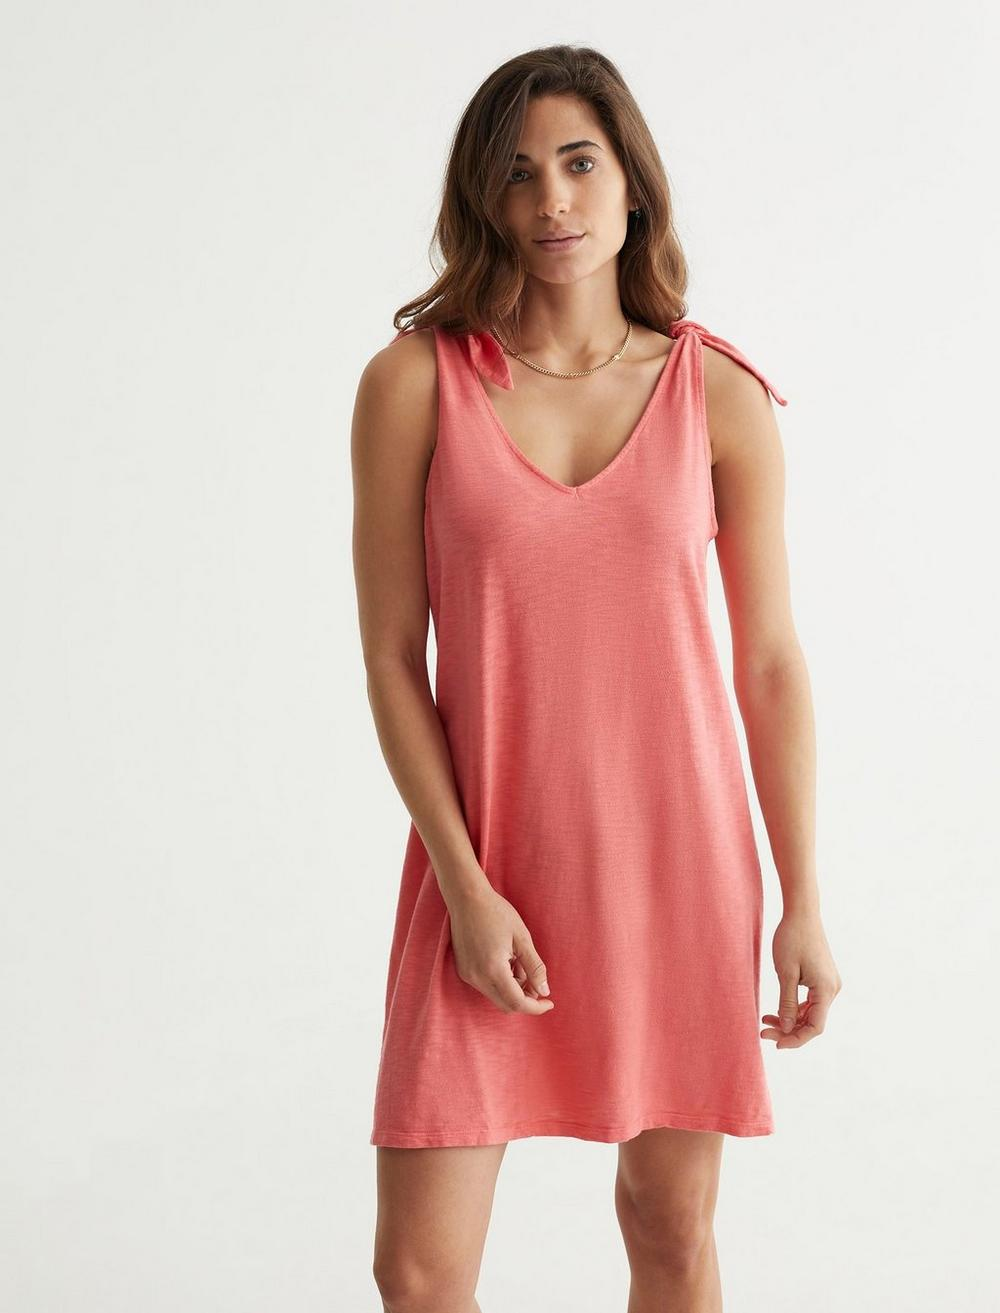 KNOTTED TANK DRESS, image 1